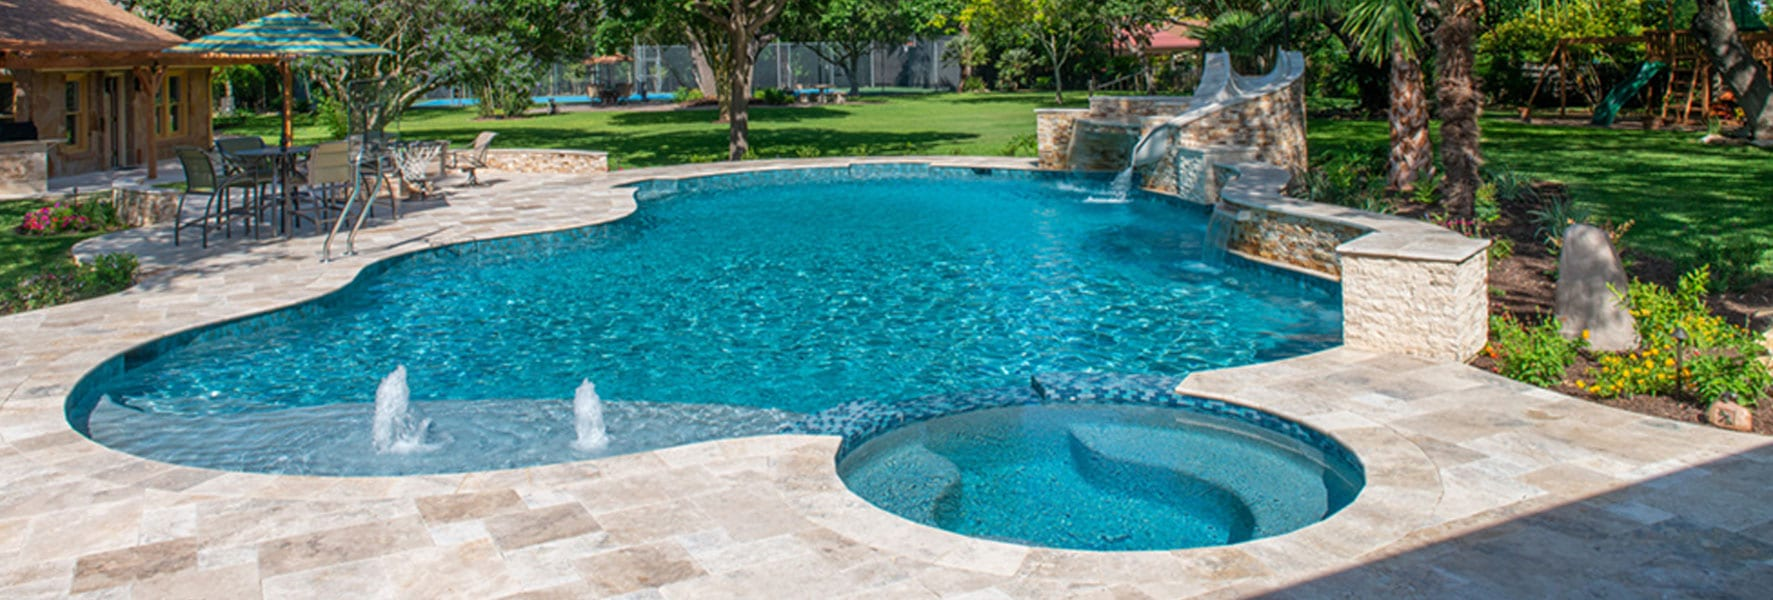 Free Form Pools Challenger Pools Best Swimming Pool